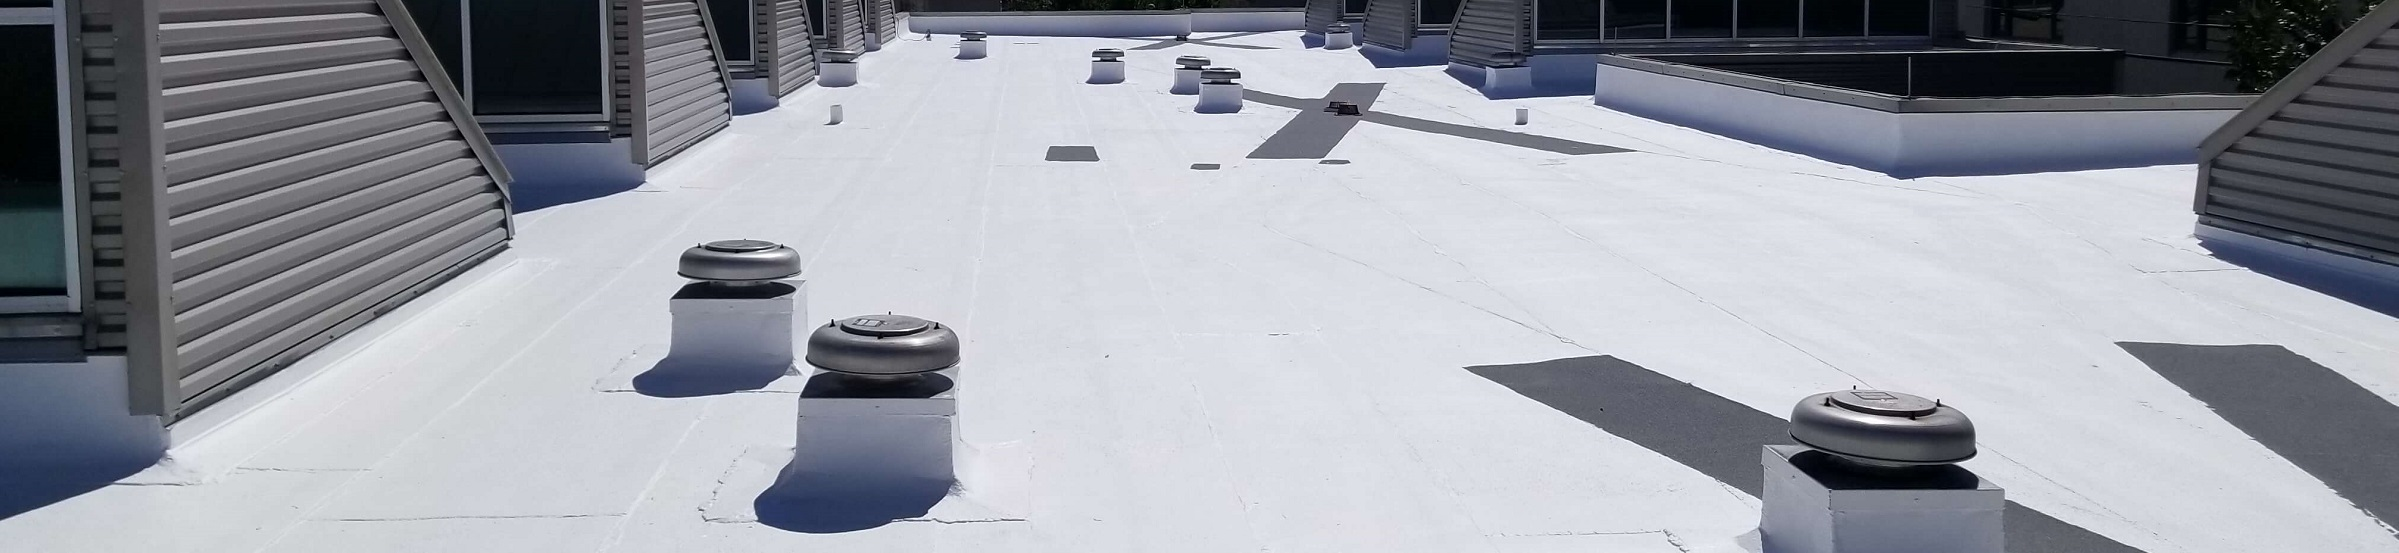 Fluid Applied Reinforced Roofing Systems - Structure Roof